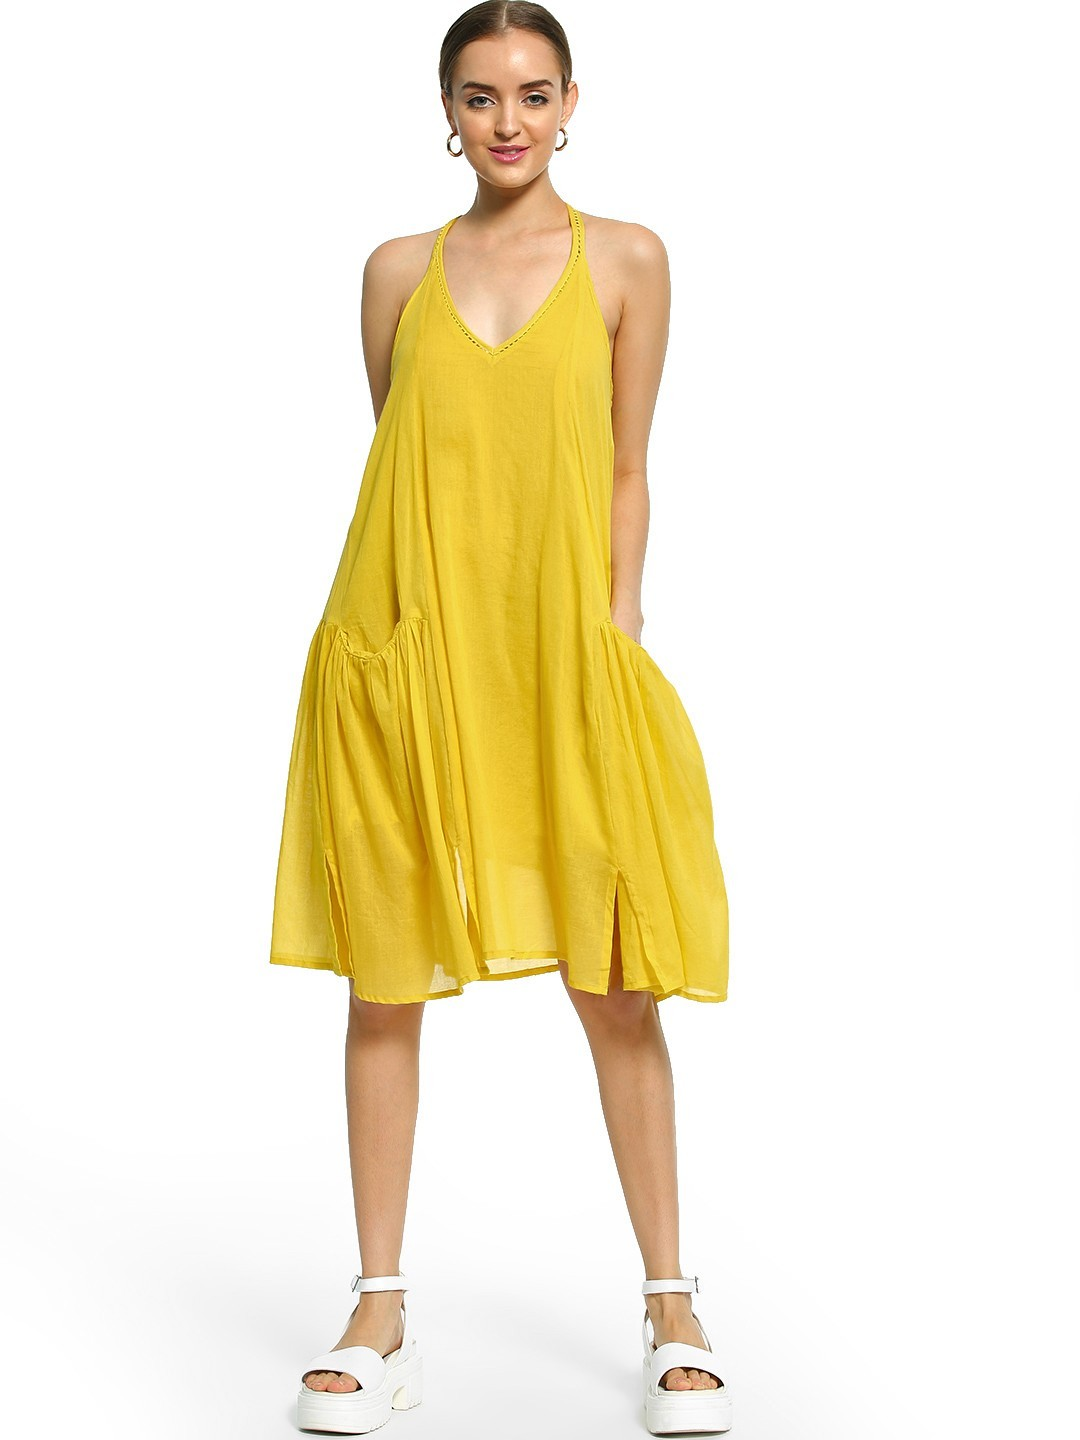 Noble Faith Yellow Lace Trim Racerback Shift Dress 1